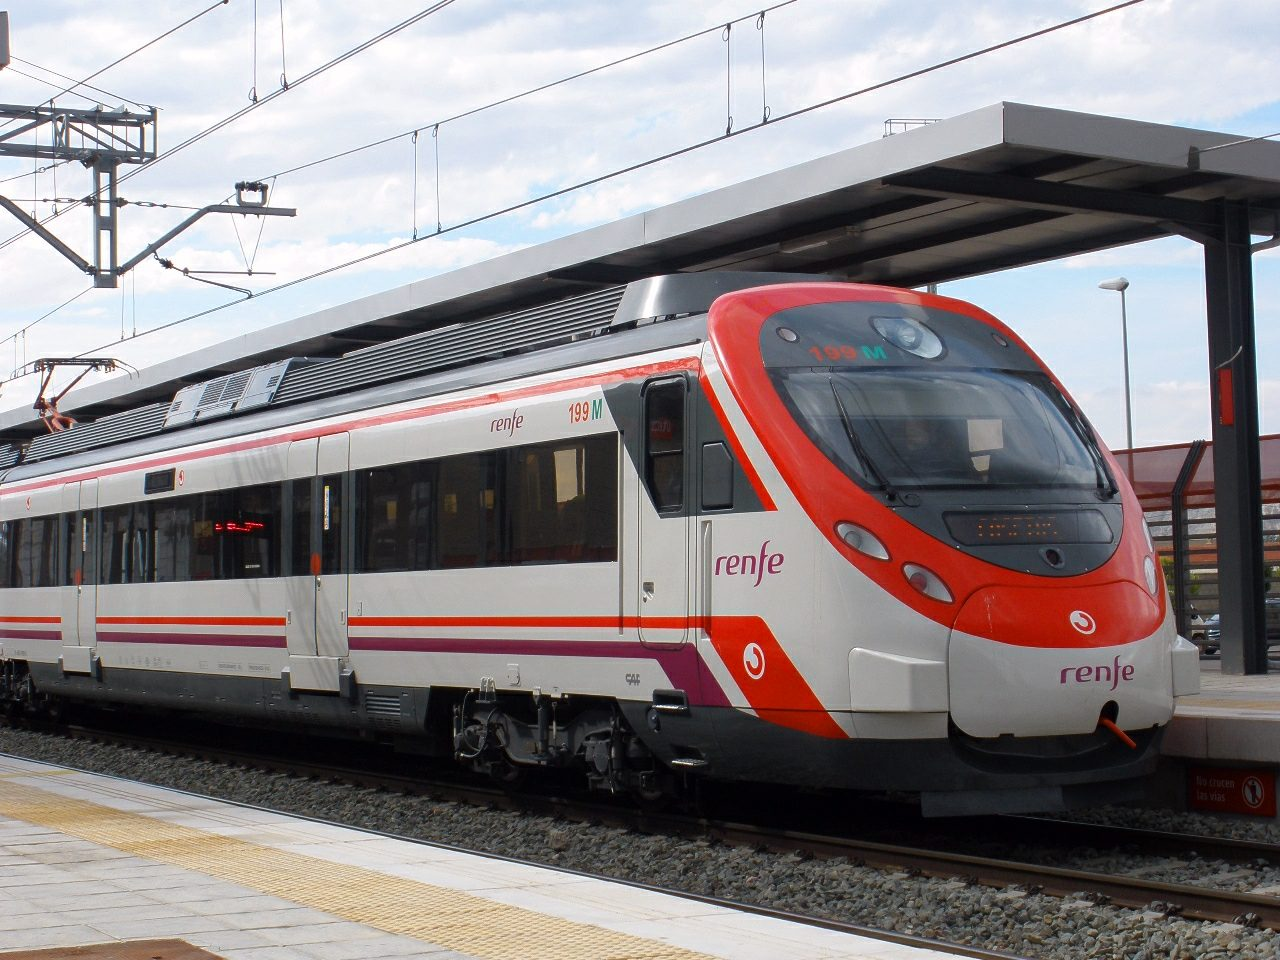 A Renfe Civia EMU –the proposed train for the hydrogen fuel cell trials